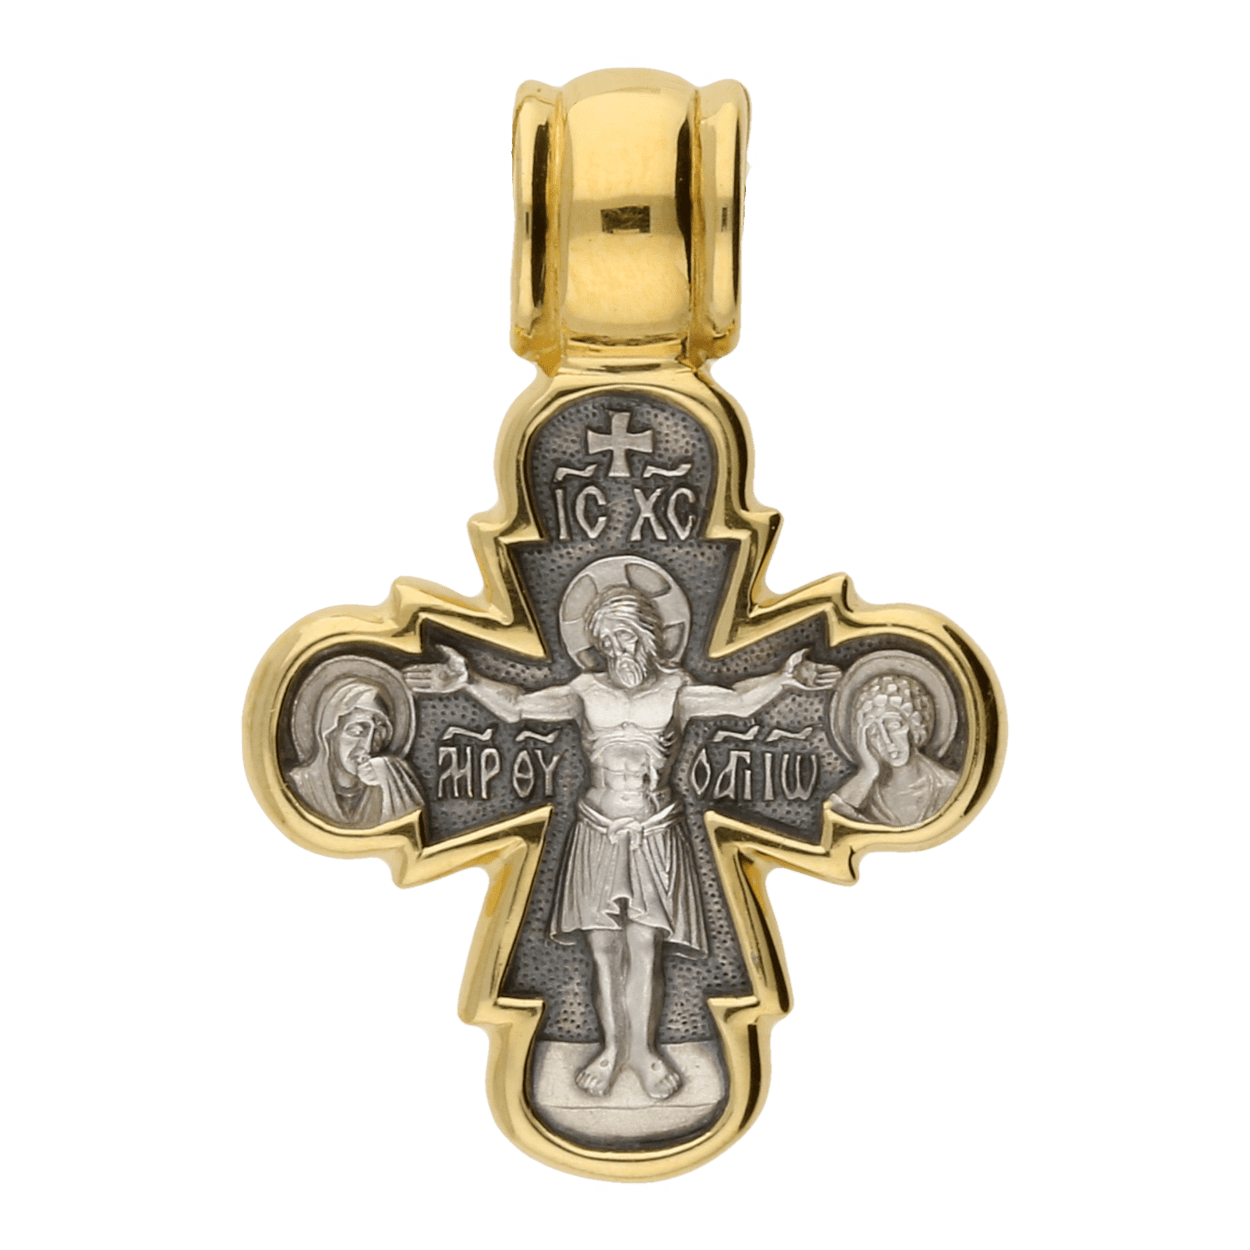 Russian-Orthodox-silver-Cross-pendant-CRUCIFIX-WITH-THE-HOLY-INTERCESSORS-THEOTOKOS-ORANTA-Master-Jeweler-Fedorov